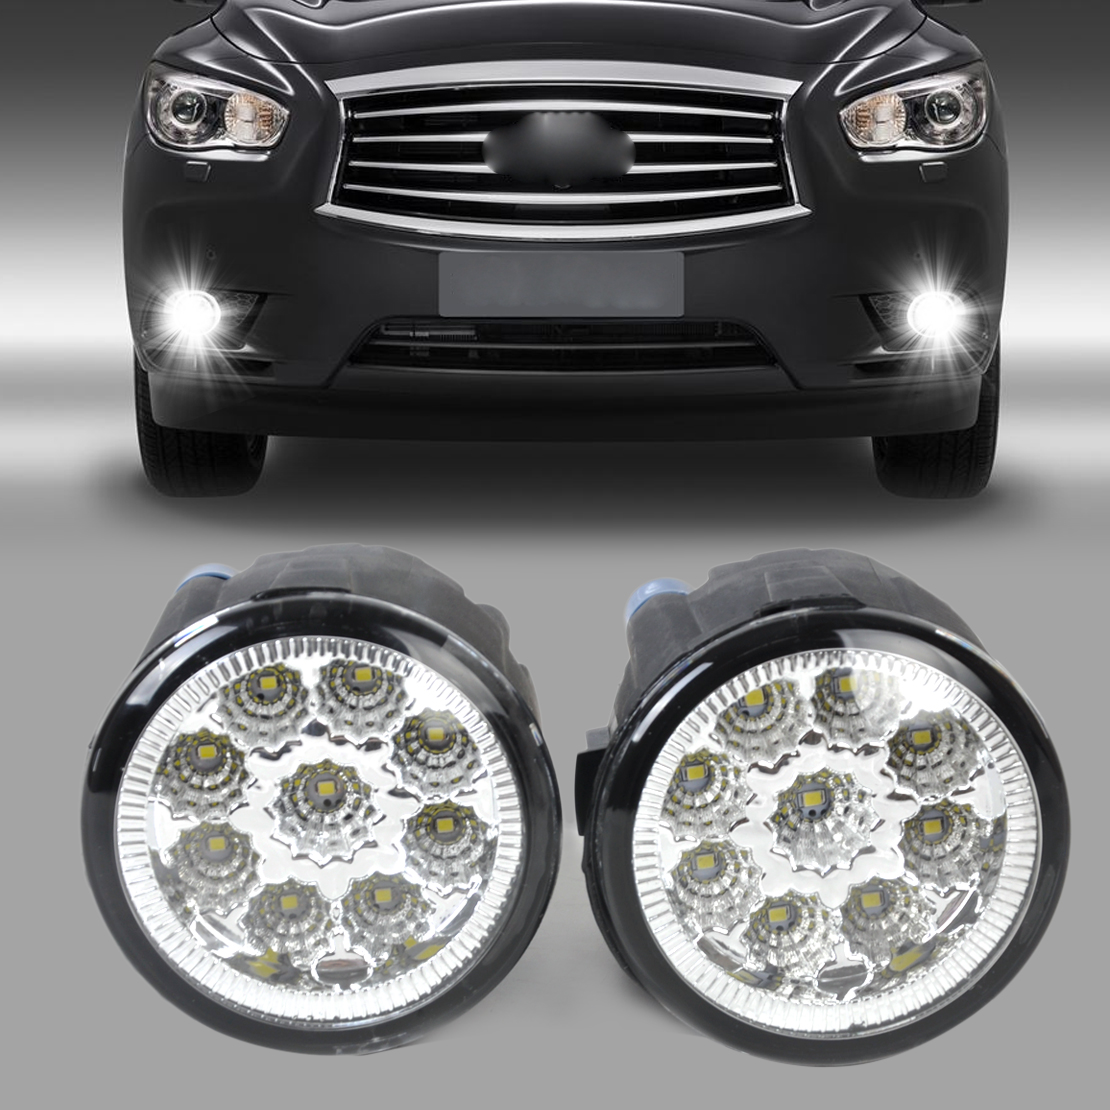 2011 infiniti m56 online shopping the world largest 2011 infiniti dwcx 261508993b 261508992b 2pcs right left fog lamp 9 led daytime running light for vanachro Gallery